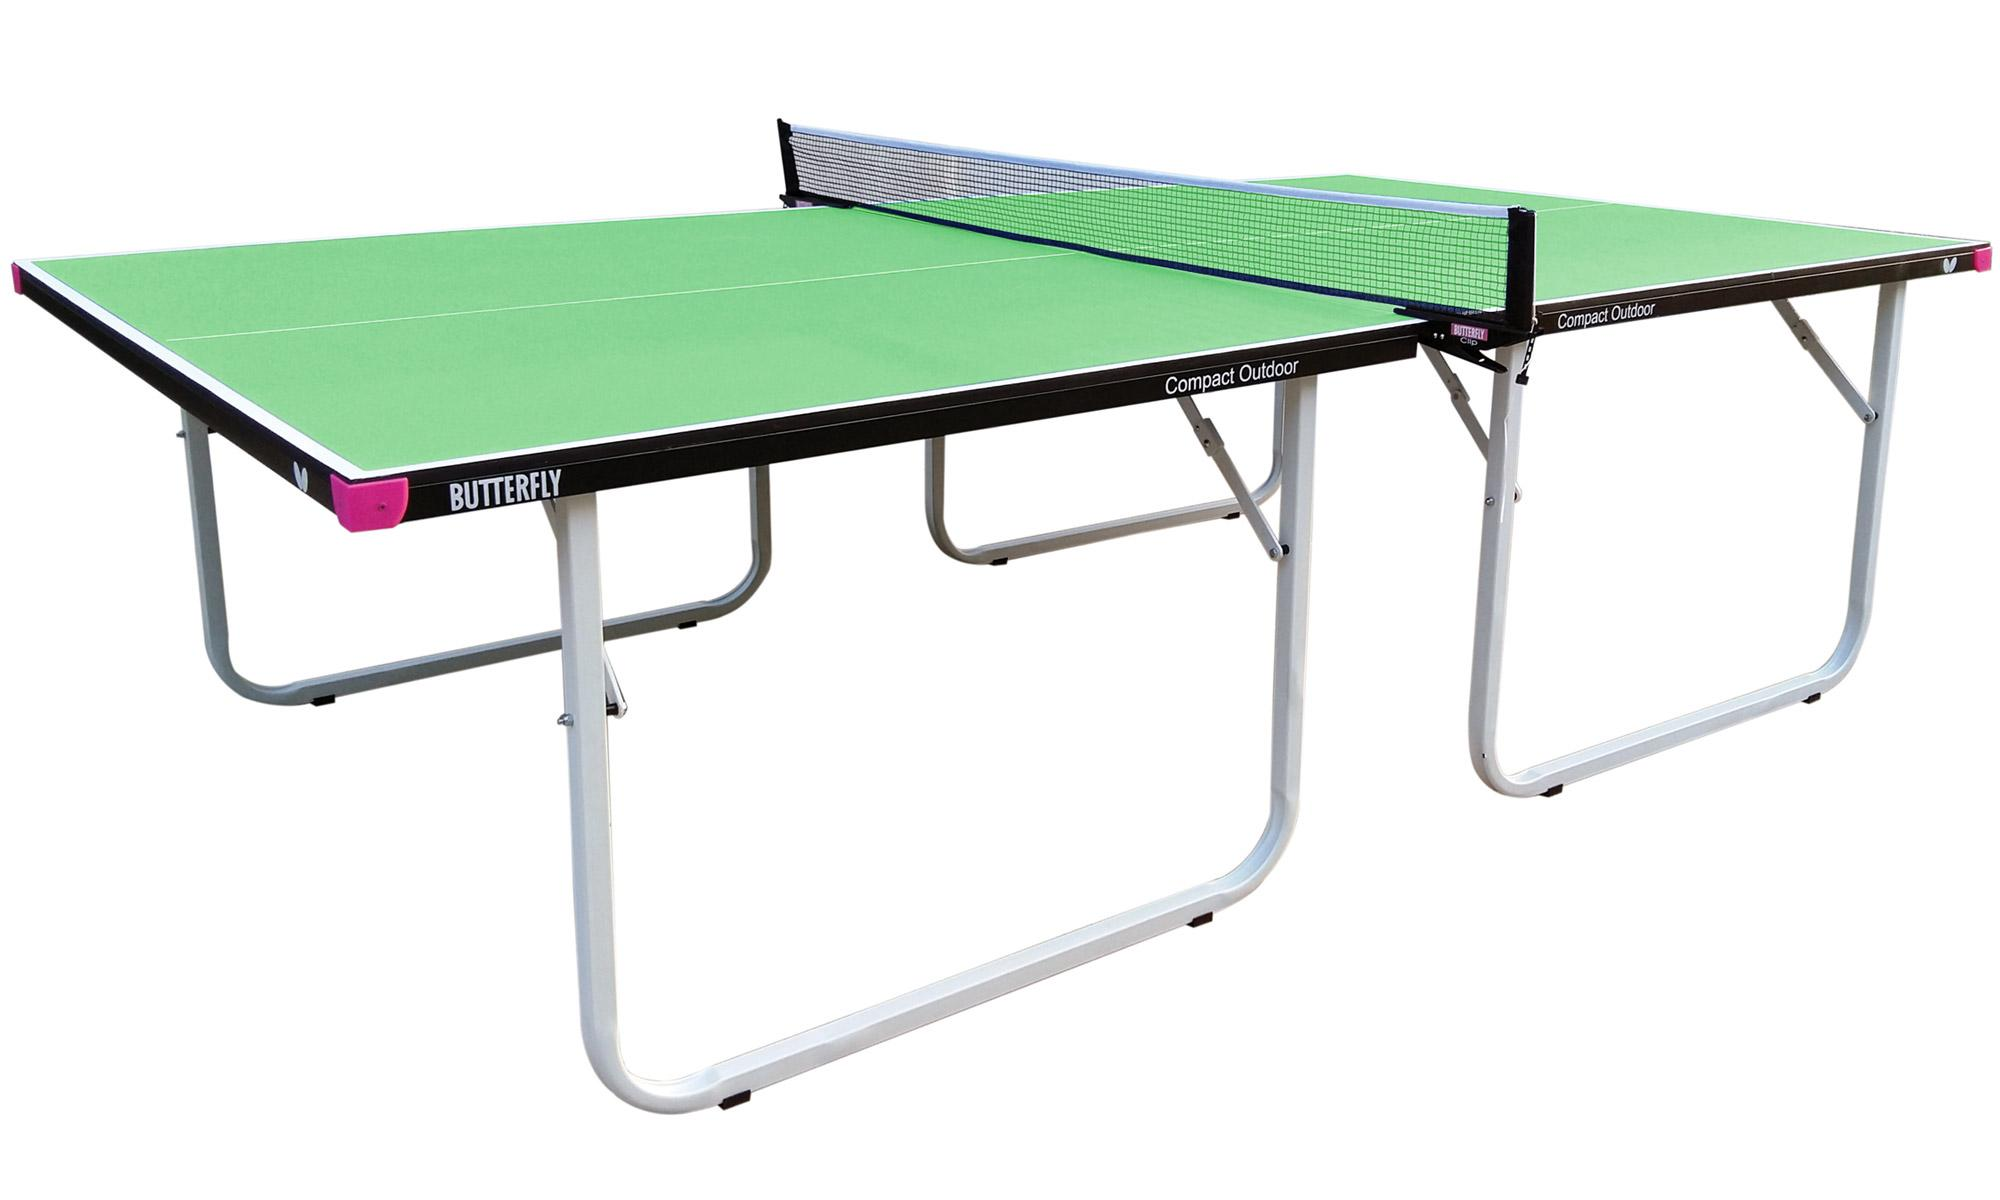 Butterfly compact outdoor table tennis tables - Full size table tennis table dimensions ...